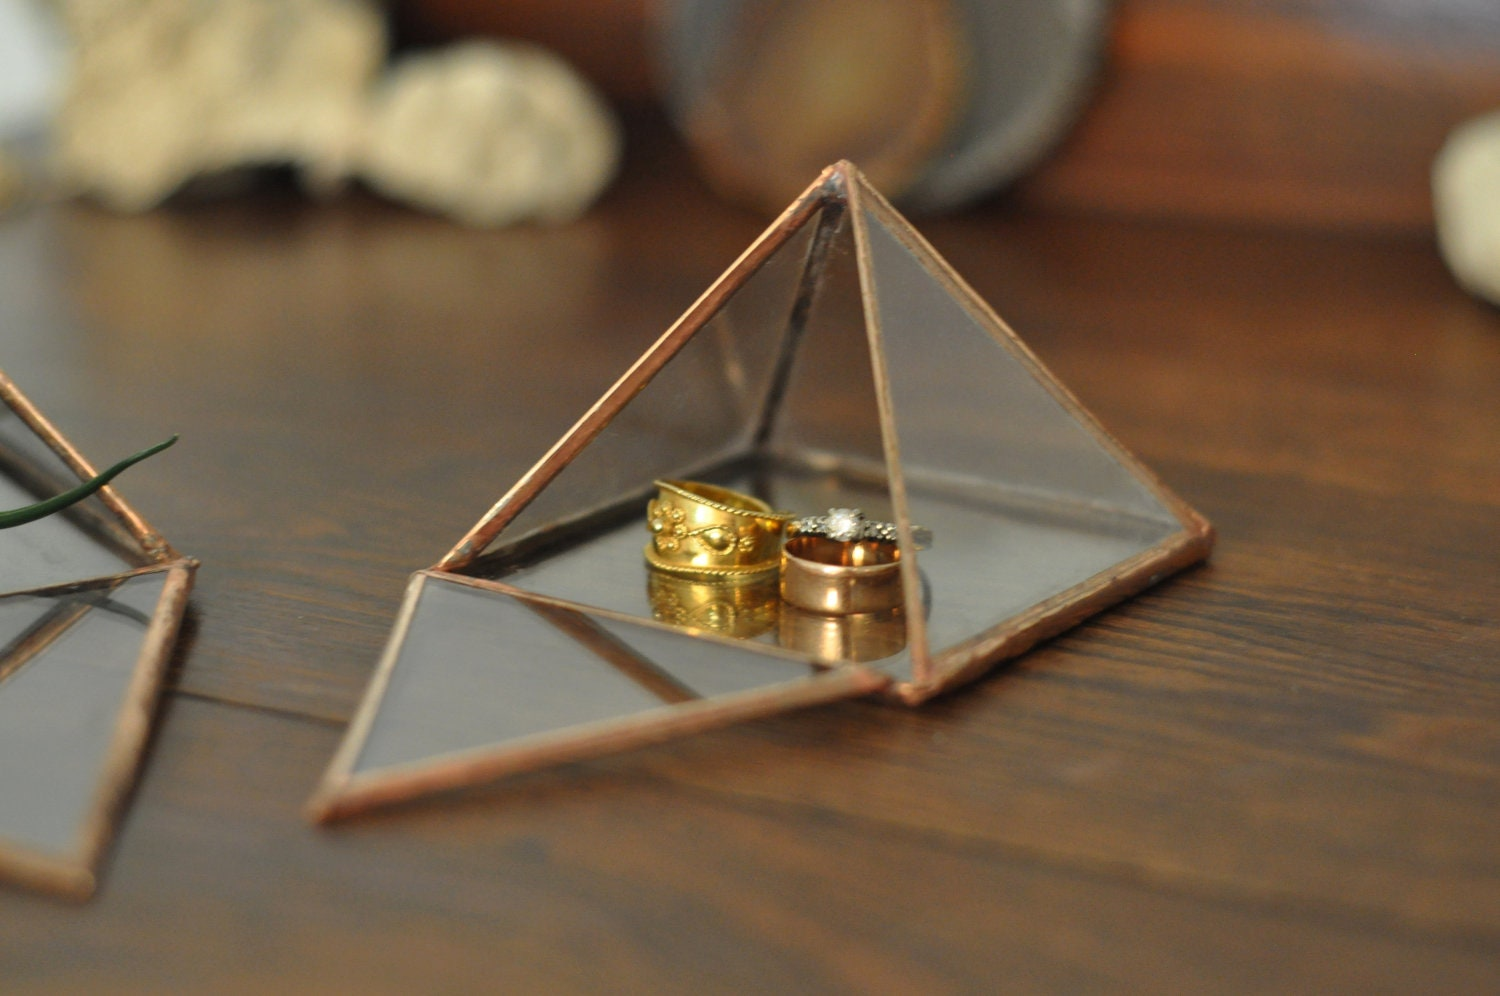 Display Box small glass pyramid jewelry box